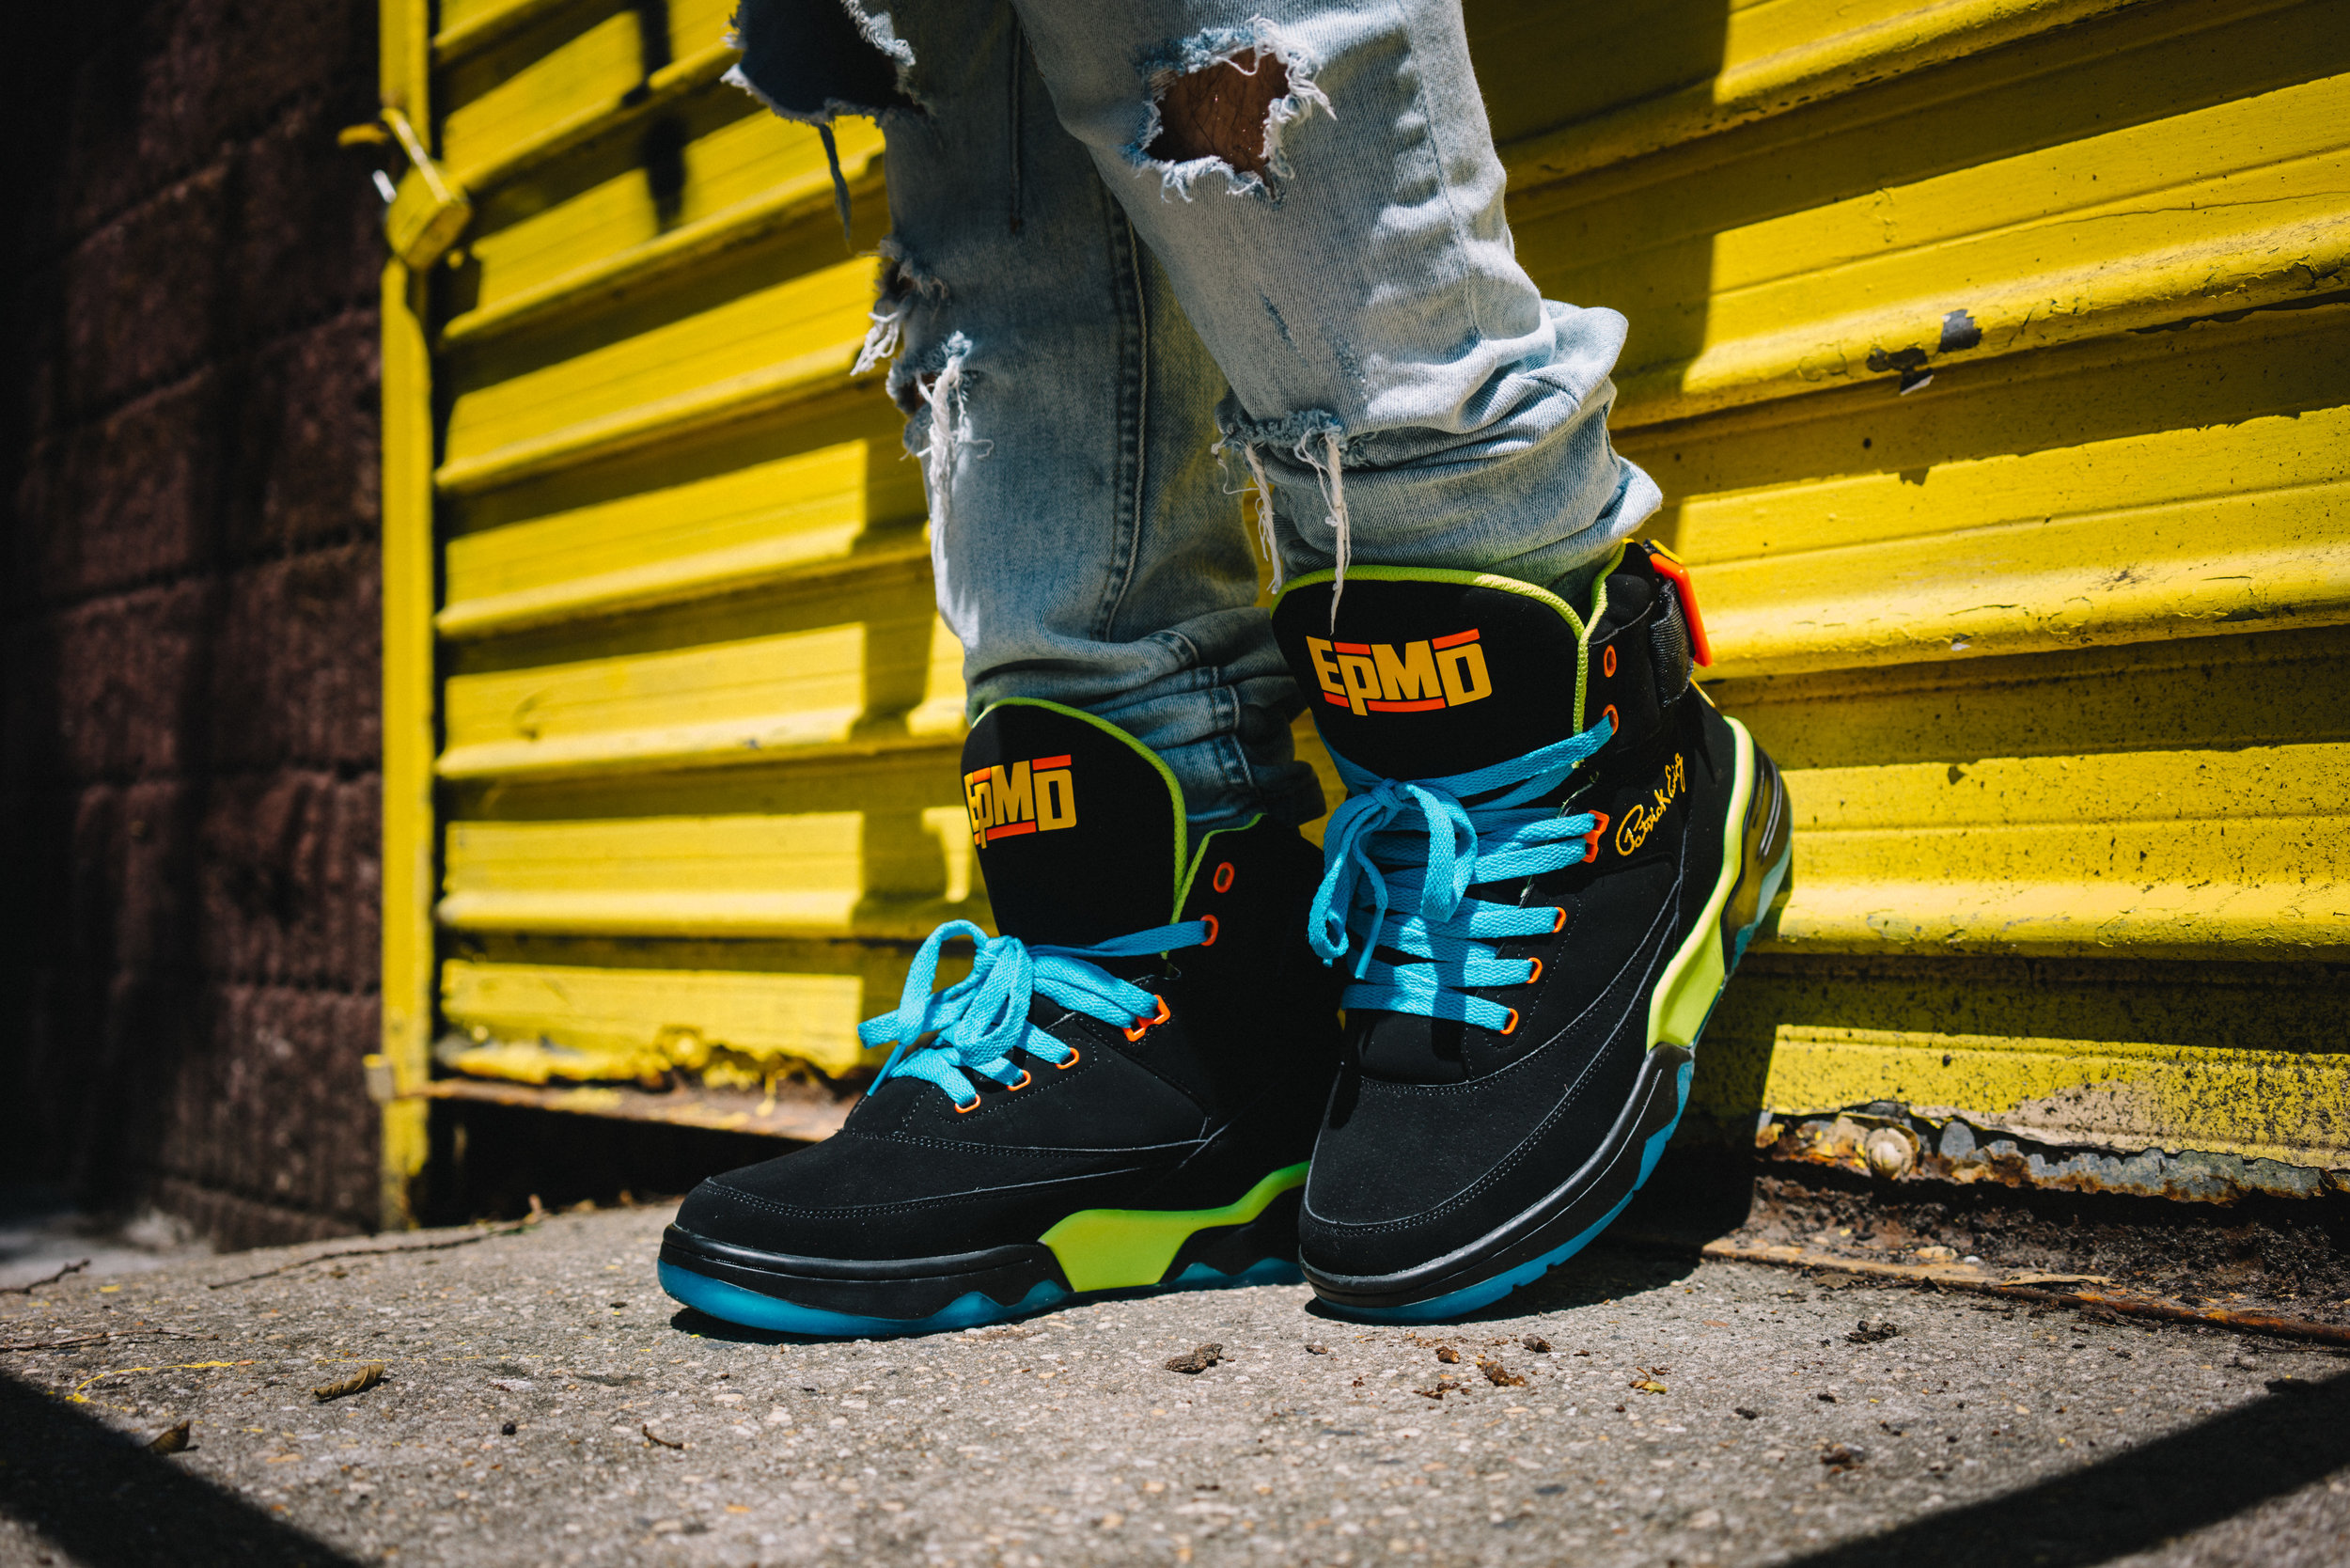 SMG for EPMD under exclusive license to Ewing Athletics.